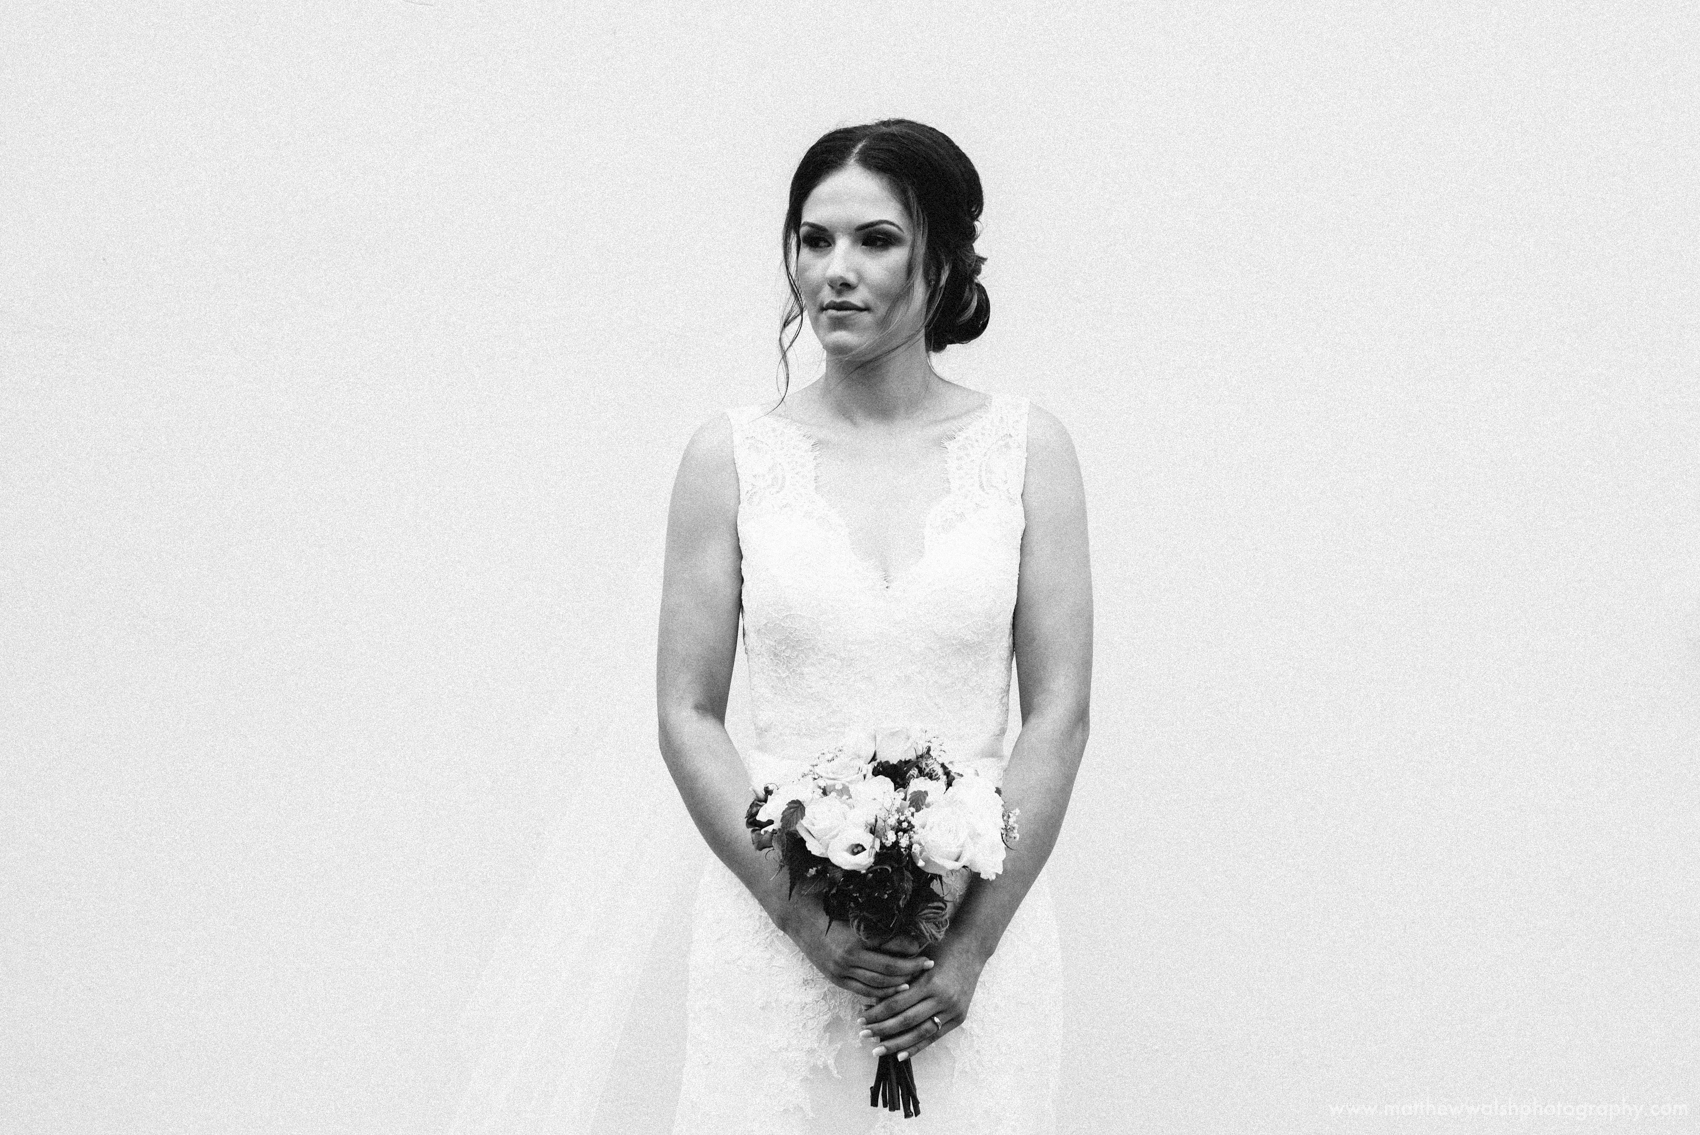 The beautiful bride standing against a white wall